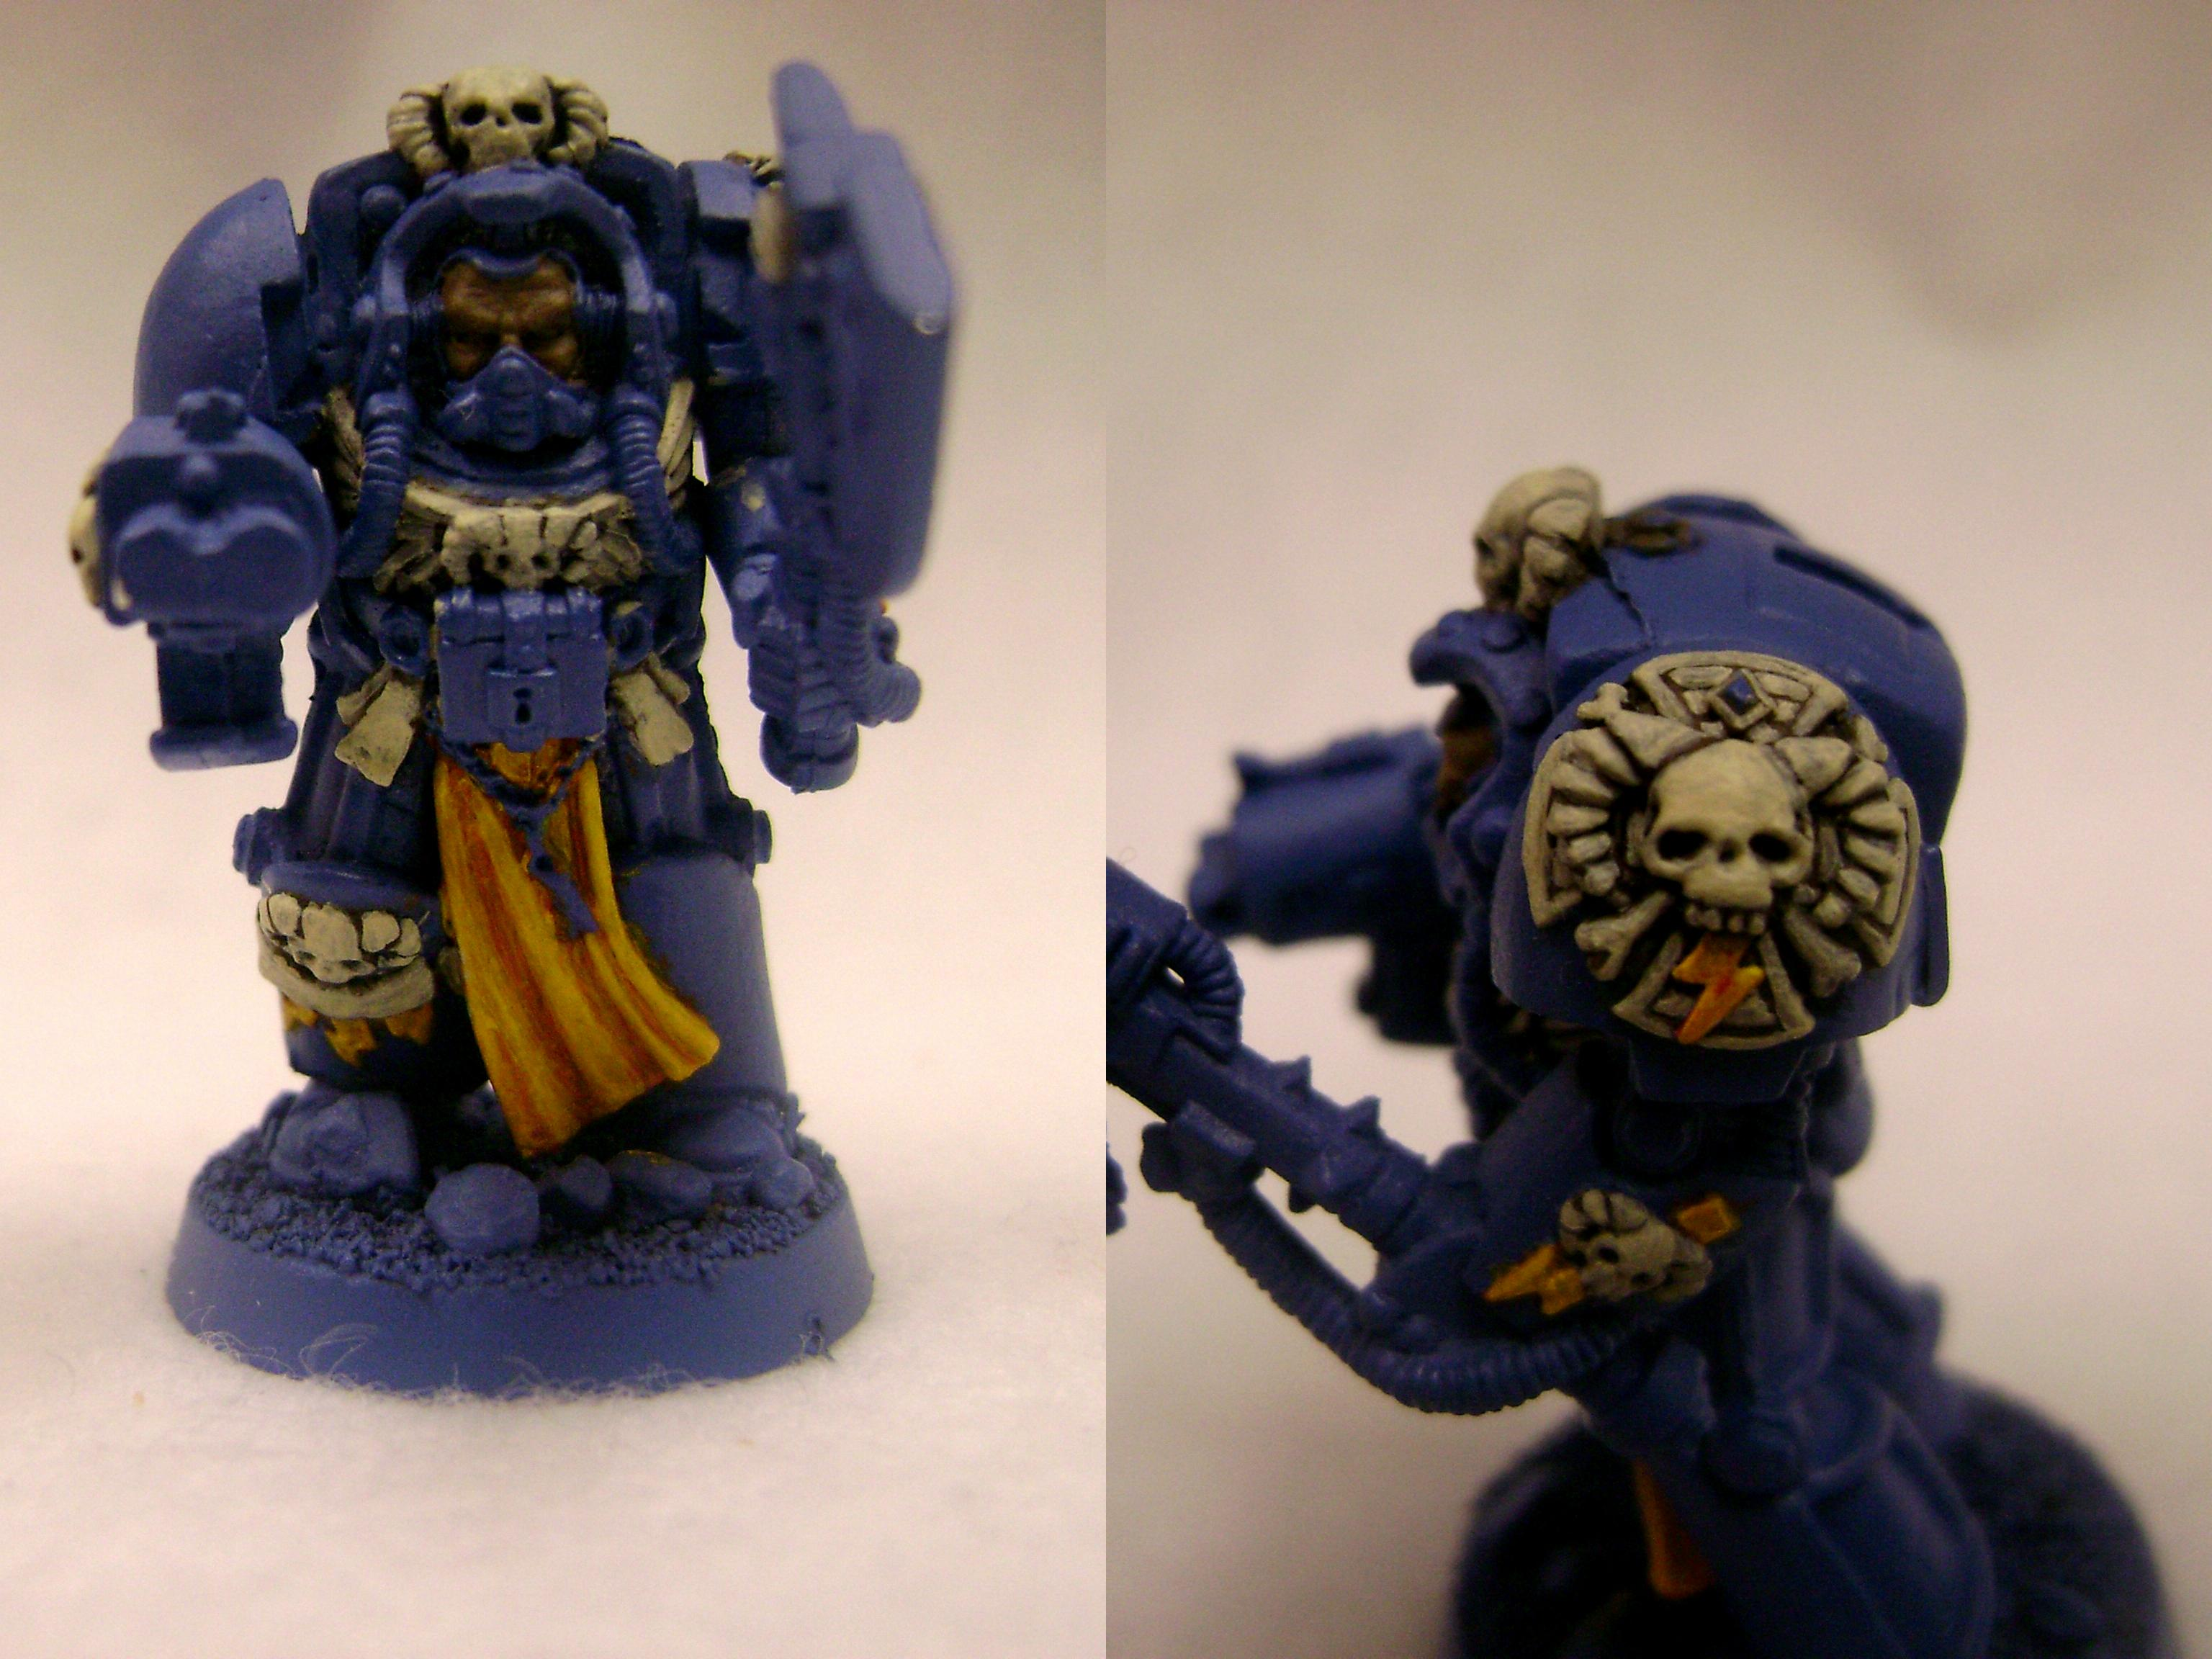 2nd Edition, Librarian, Space Marines, Terminator Armor, Ultramarines